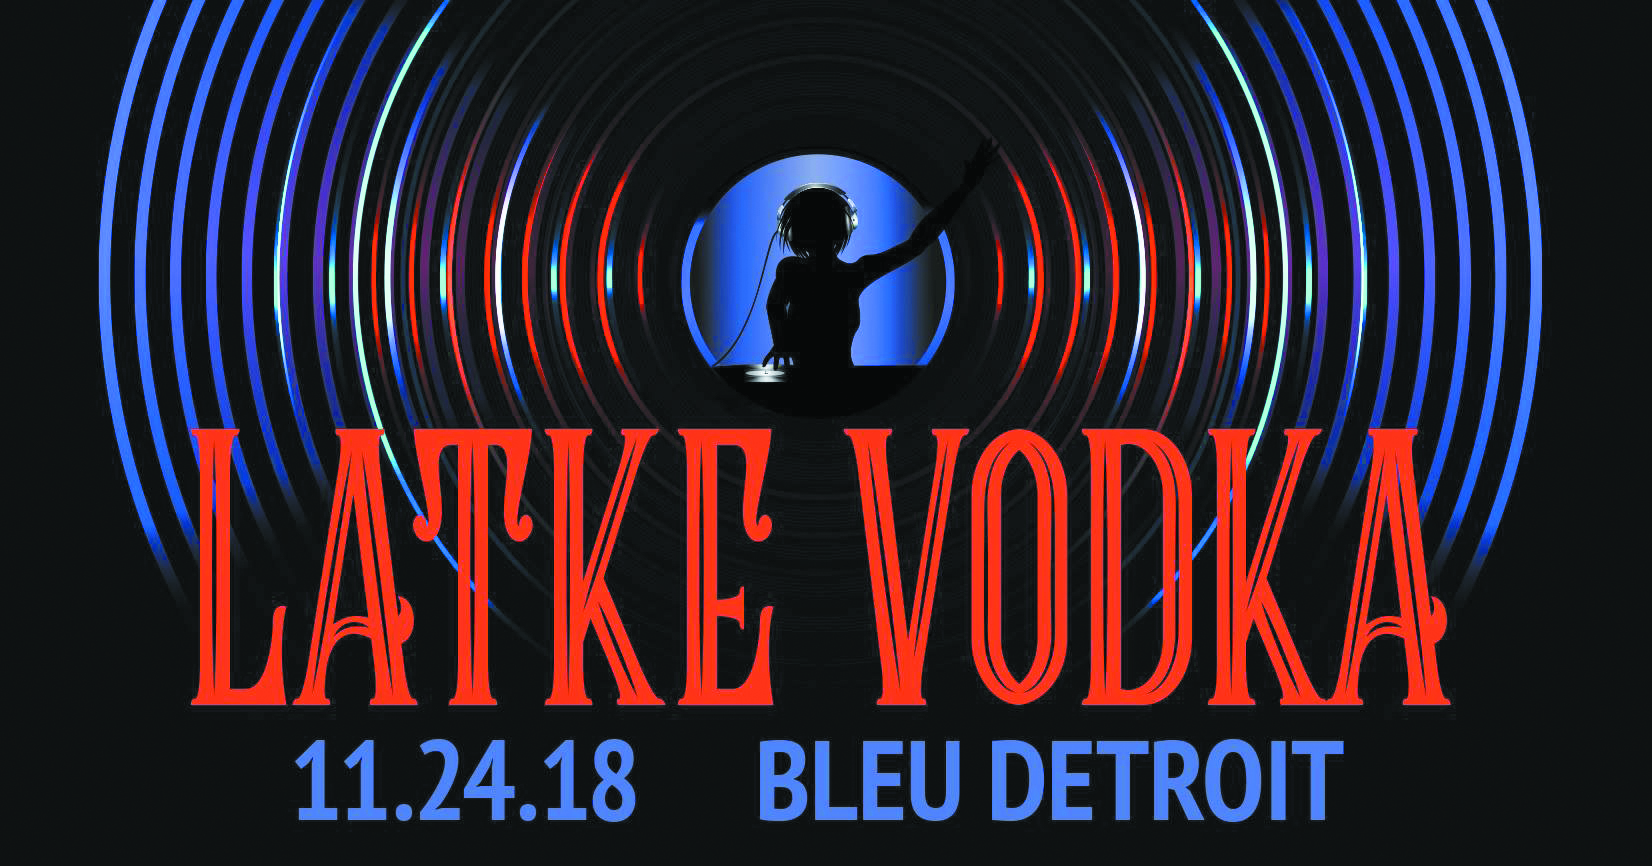 Latke Vodka 11.24.2018 Bleu Detroit